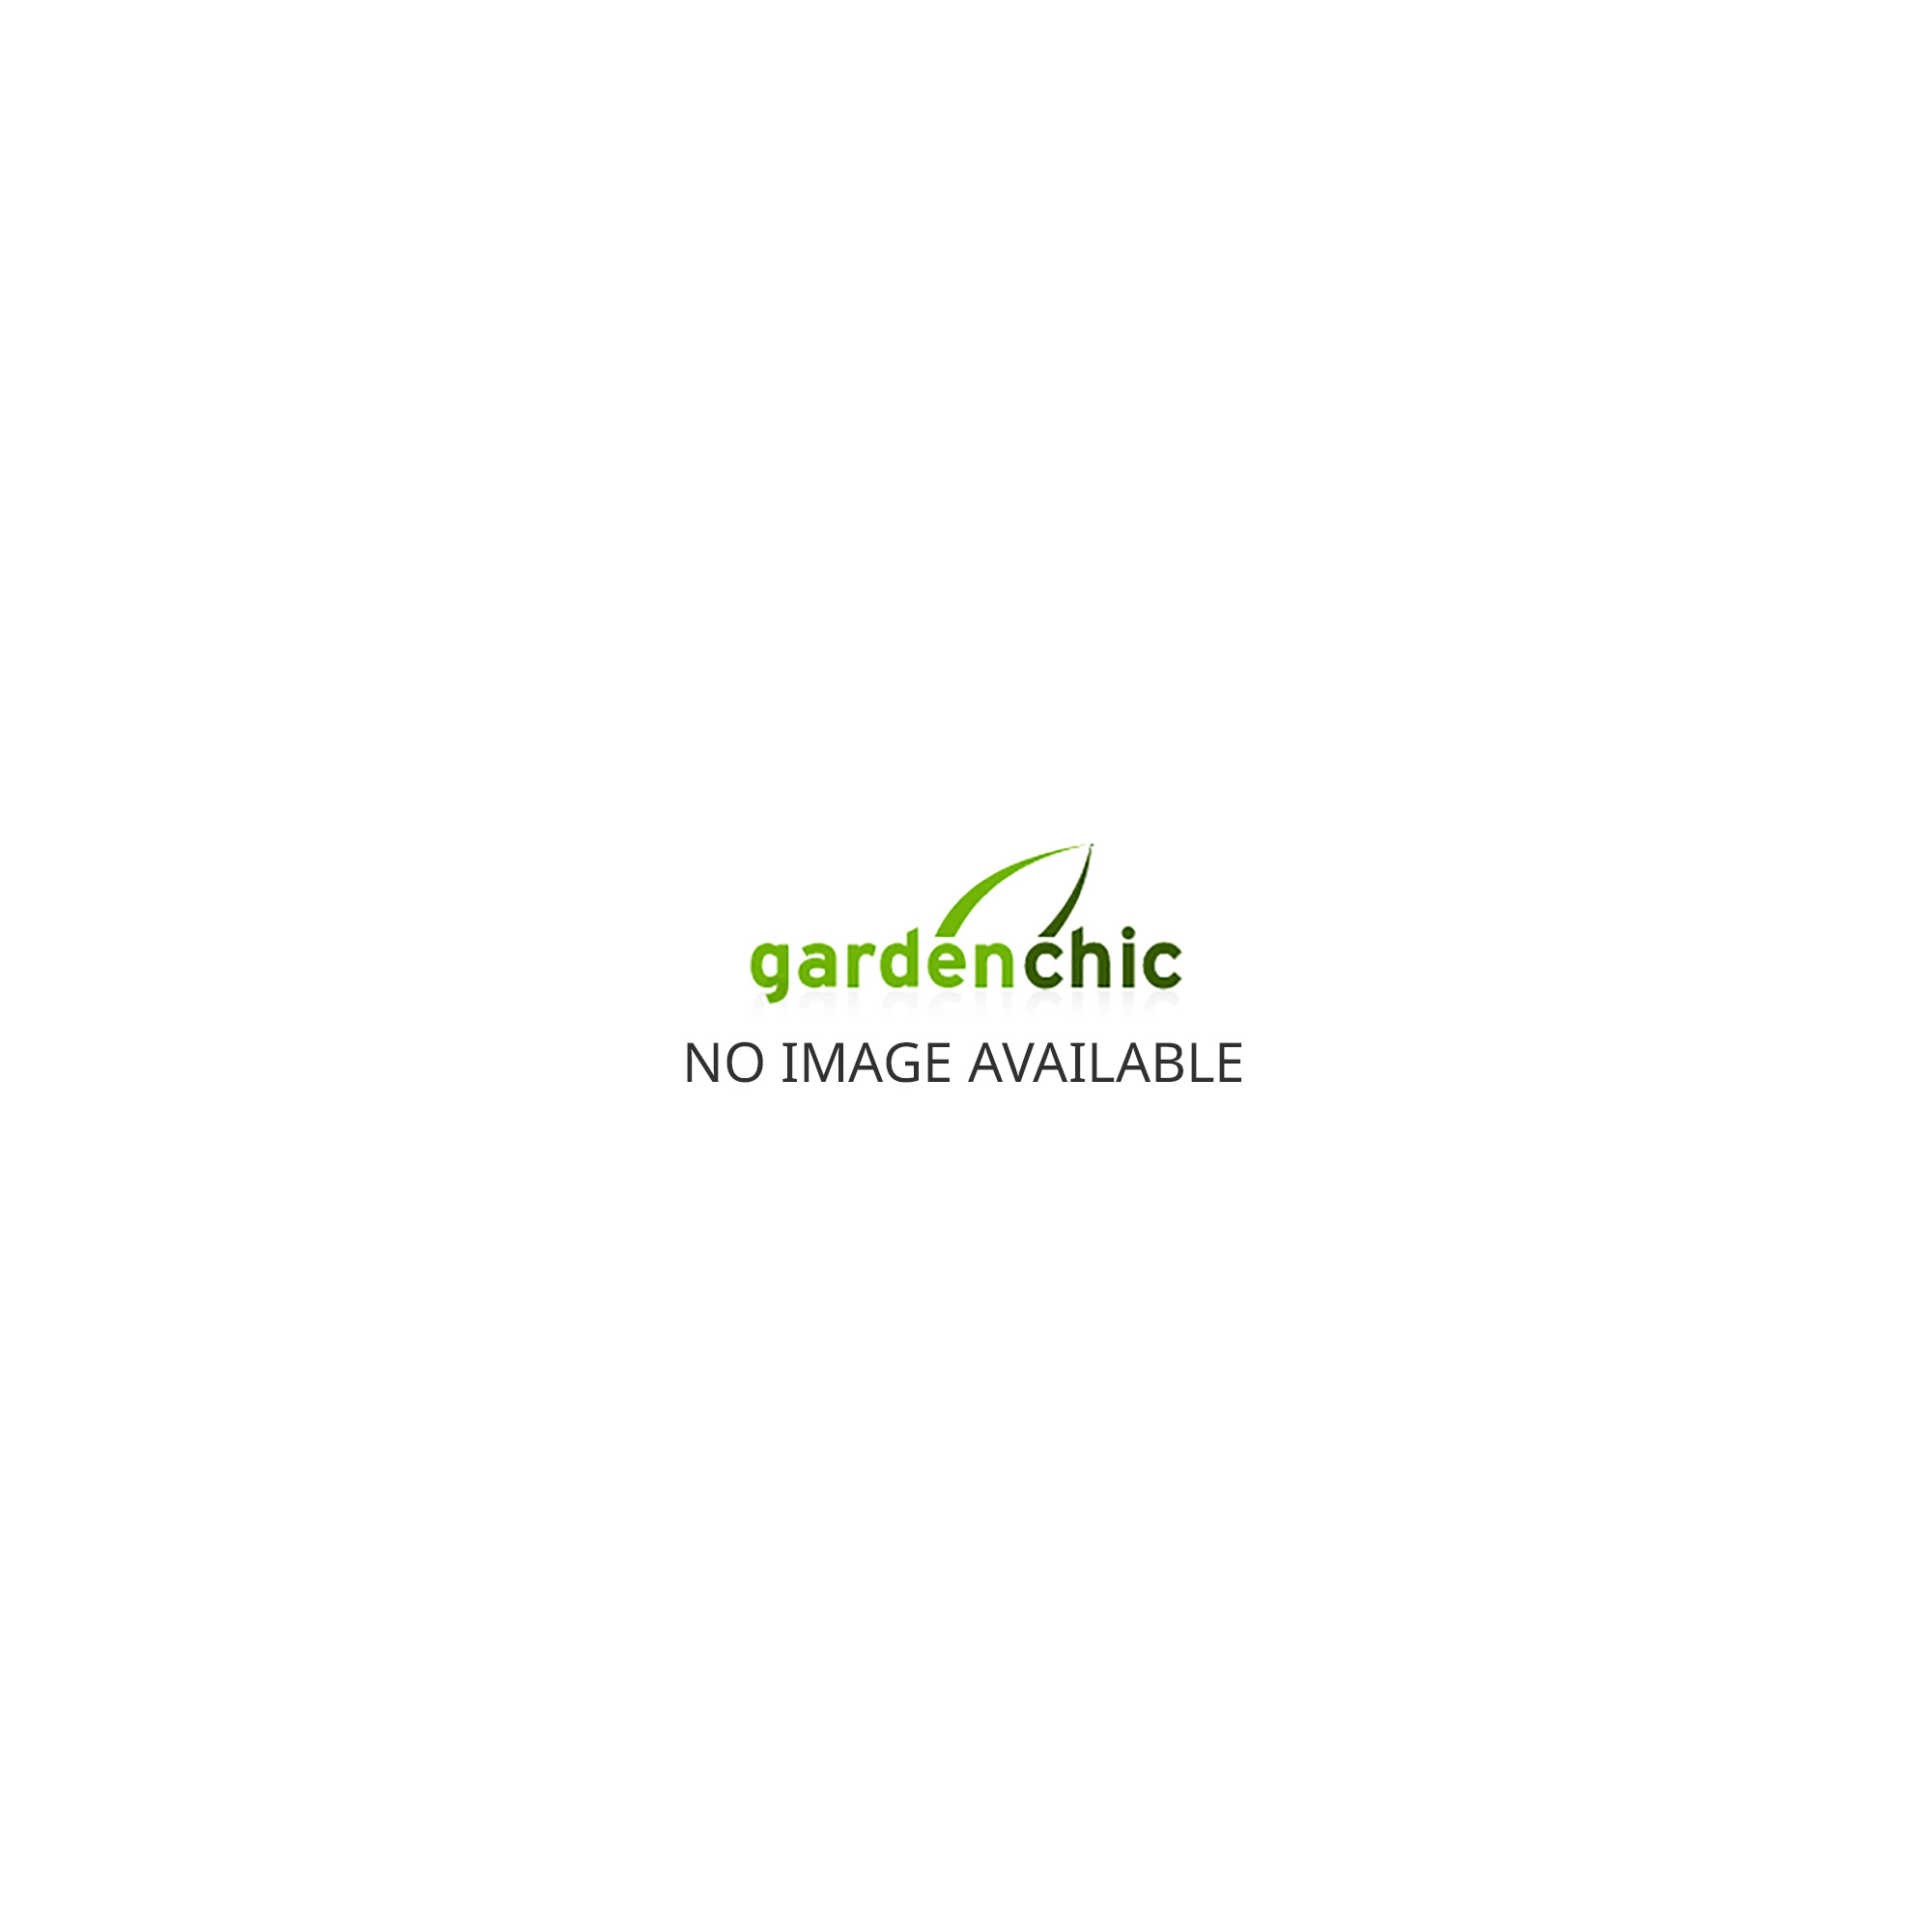 Venus 6200 6ft x 10ft Greenhouse - Green FREE Matching Base until APRIL 2018